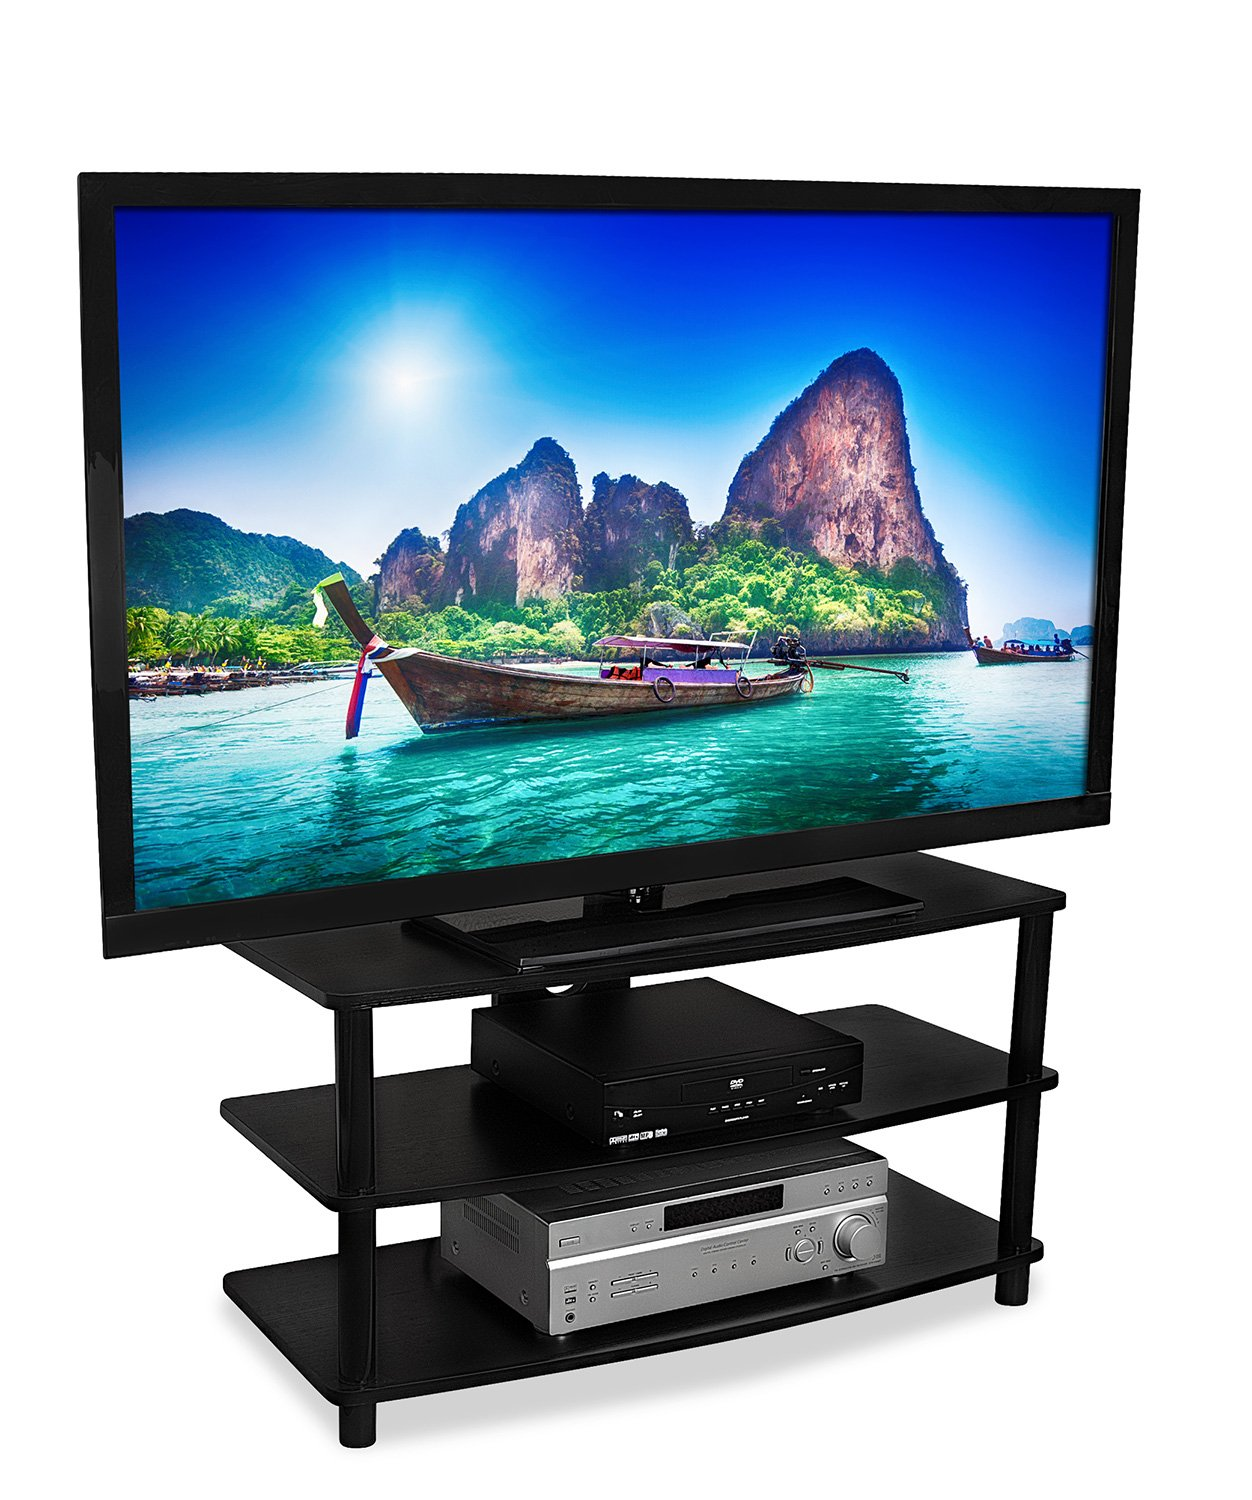 Mount-It! TV Entertainment Media Stand, Wood Television Stand for Flat Screens up to 47 inches, 88 lb Capacity (MI-868L)